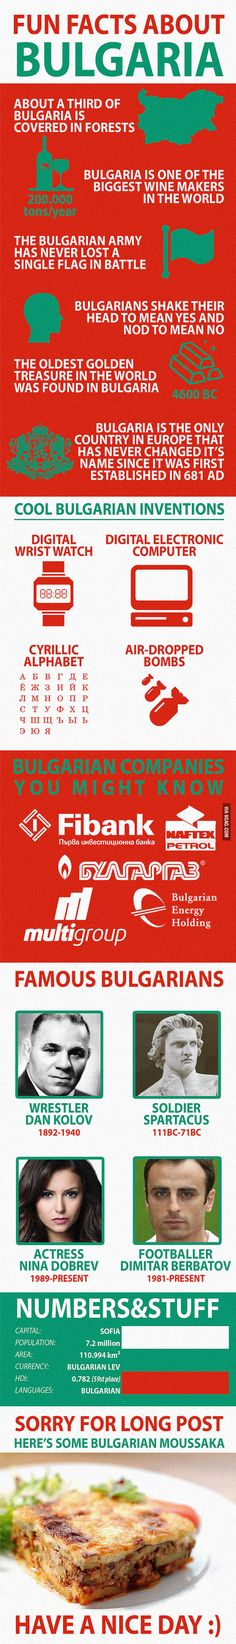 Fun Facts about Bulgaria